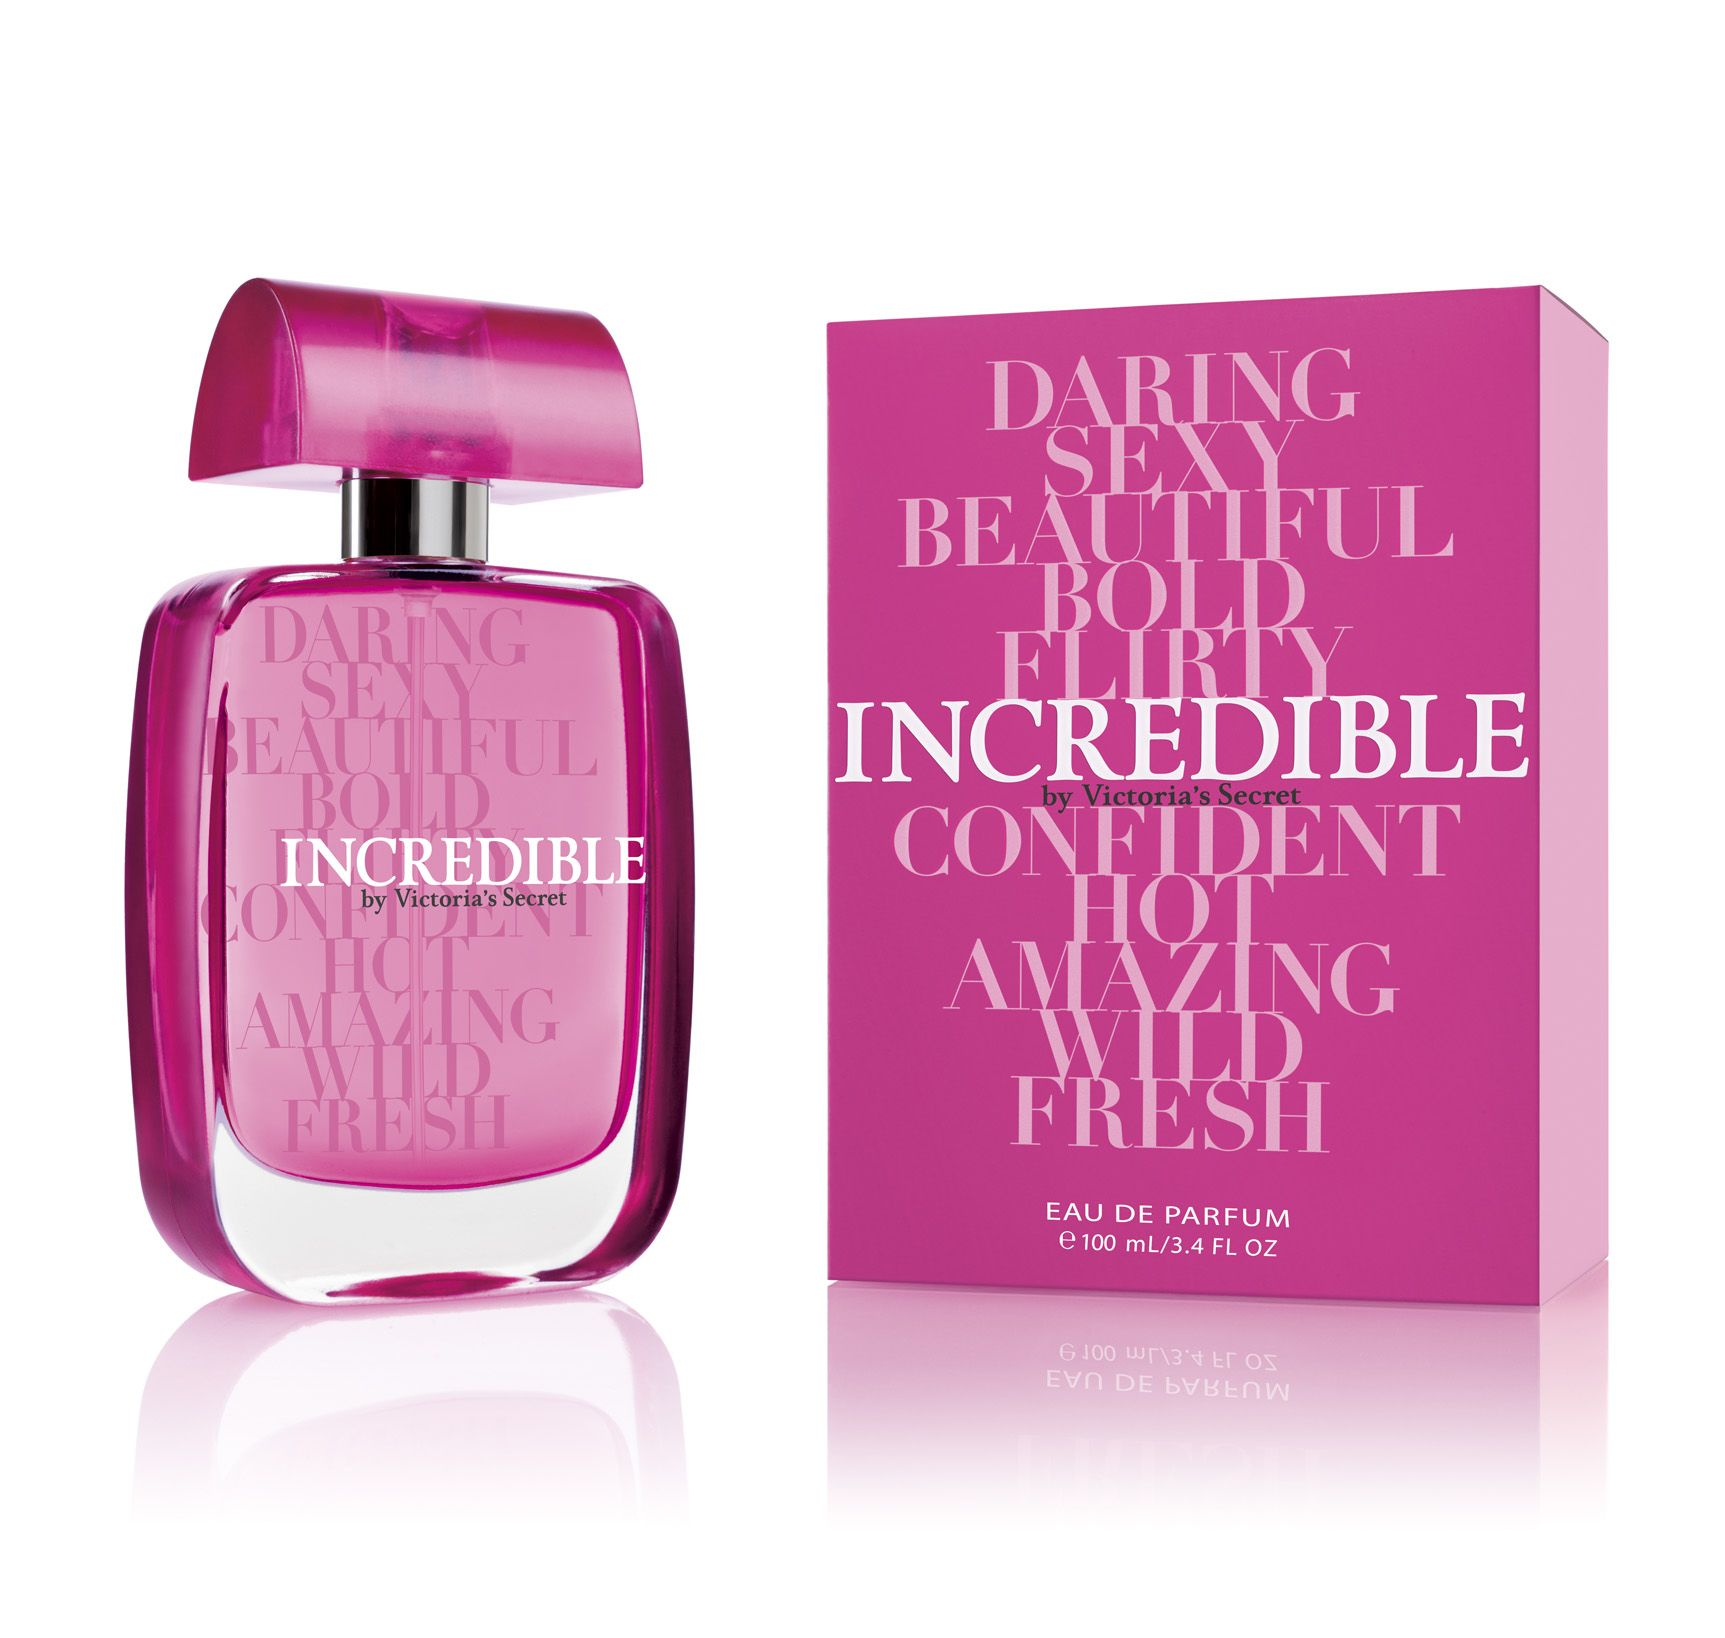 68 Best Victoria S Secret Perfume Images On Pinterest: I'm Spritzing Away My Cares With These Victoria's Secret Perfumes